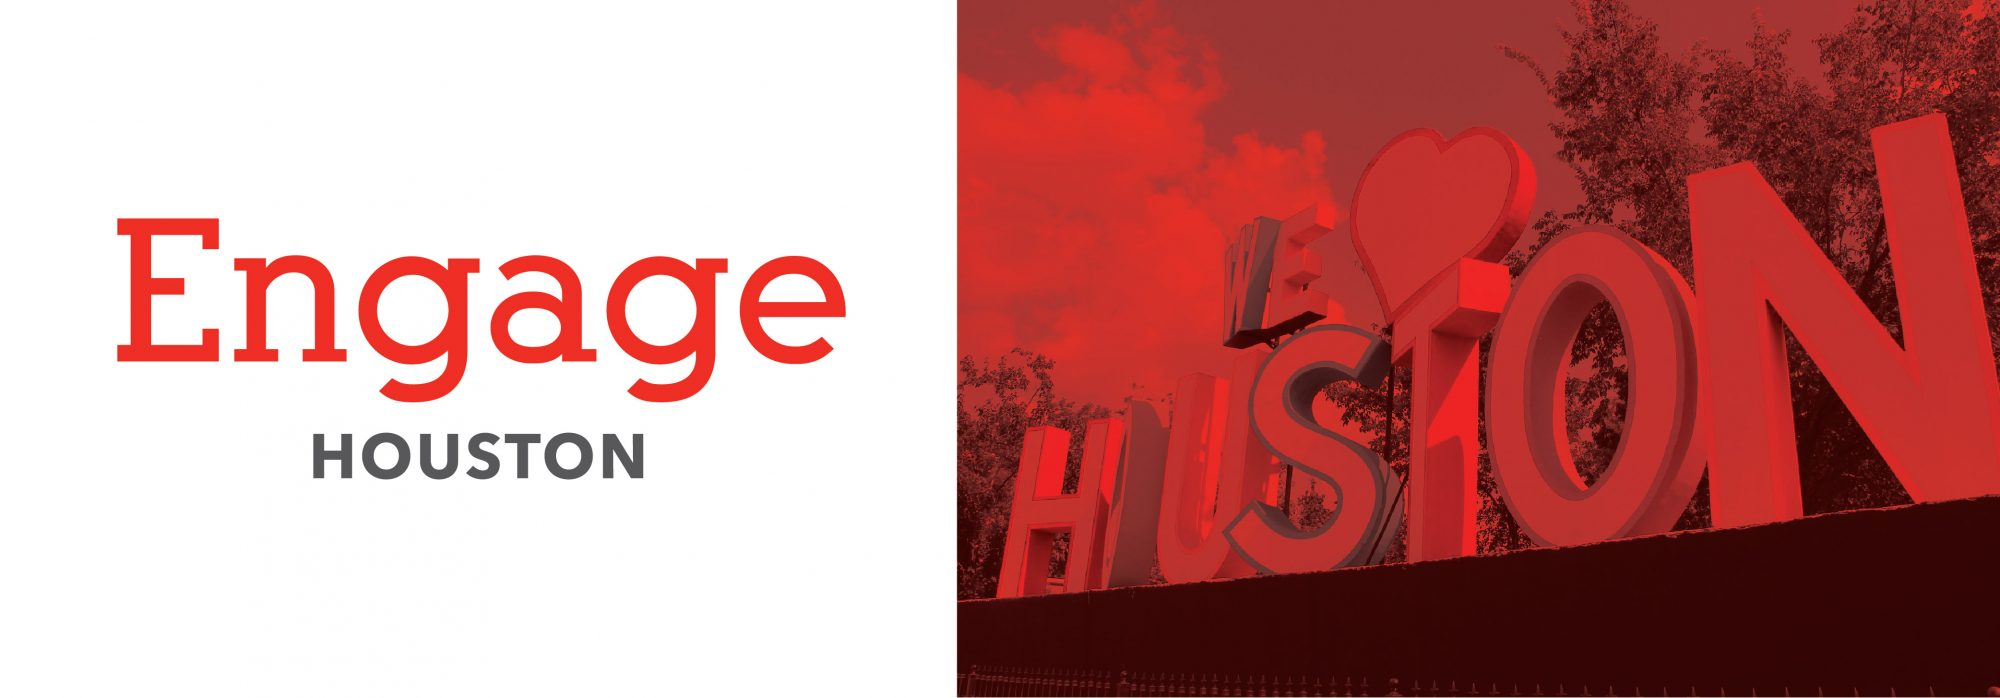 Engage Houston Header 2019_1000px_Artboard 1